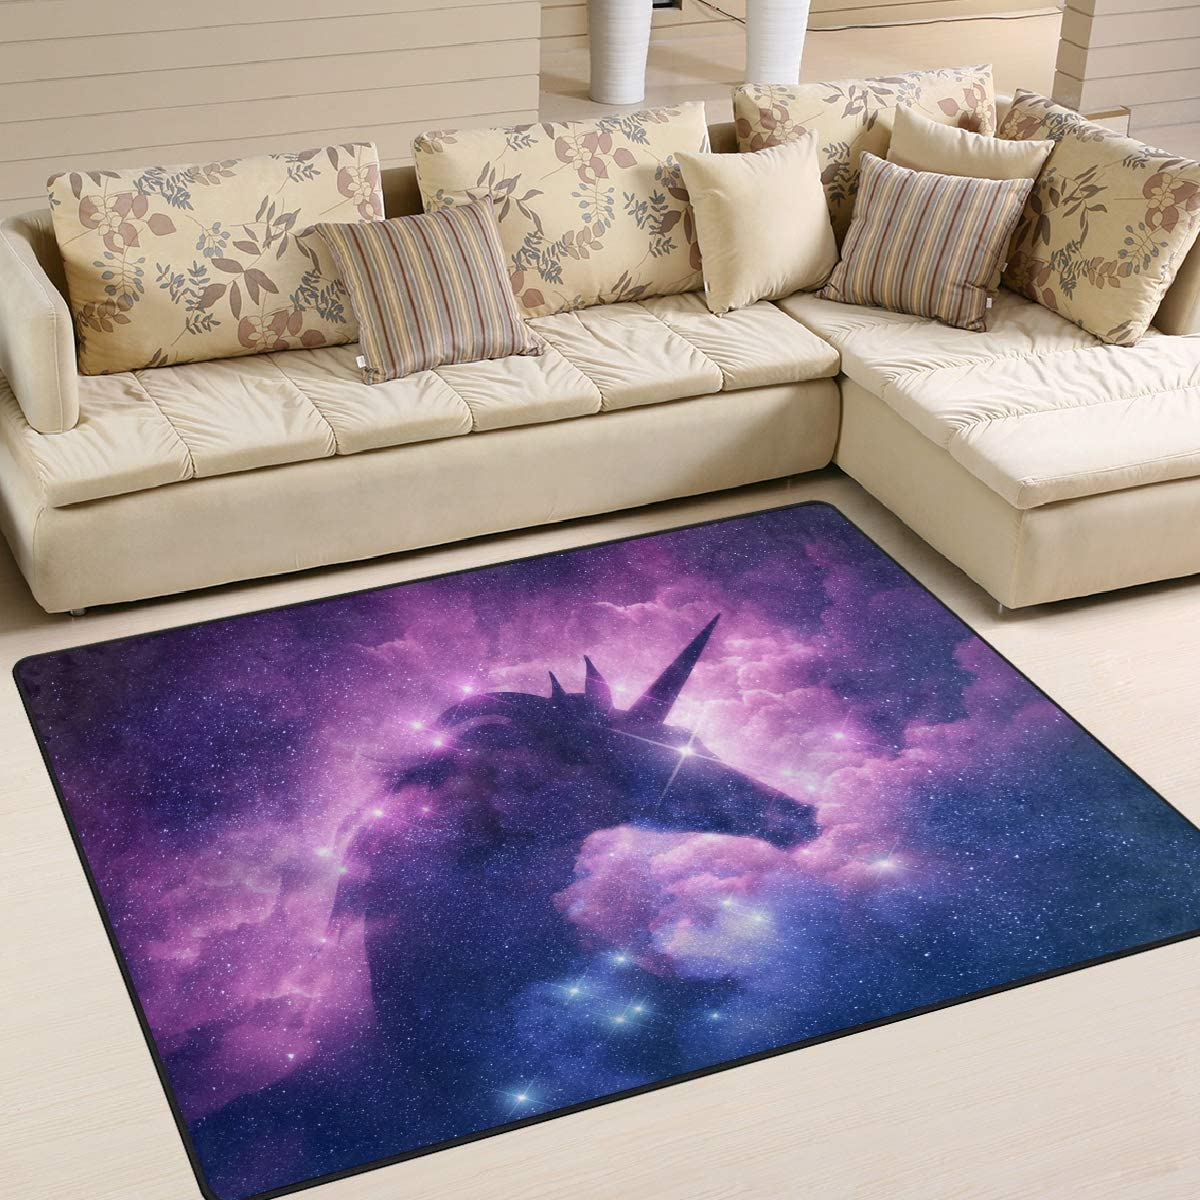 TropicalLife Abstract Galaxy Space Unicorn Area Rug 4 x 5 Mat Home Decor for Bedroom Dorm Living Room Dinning Room Kitchen Office